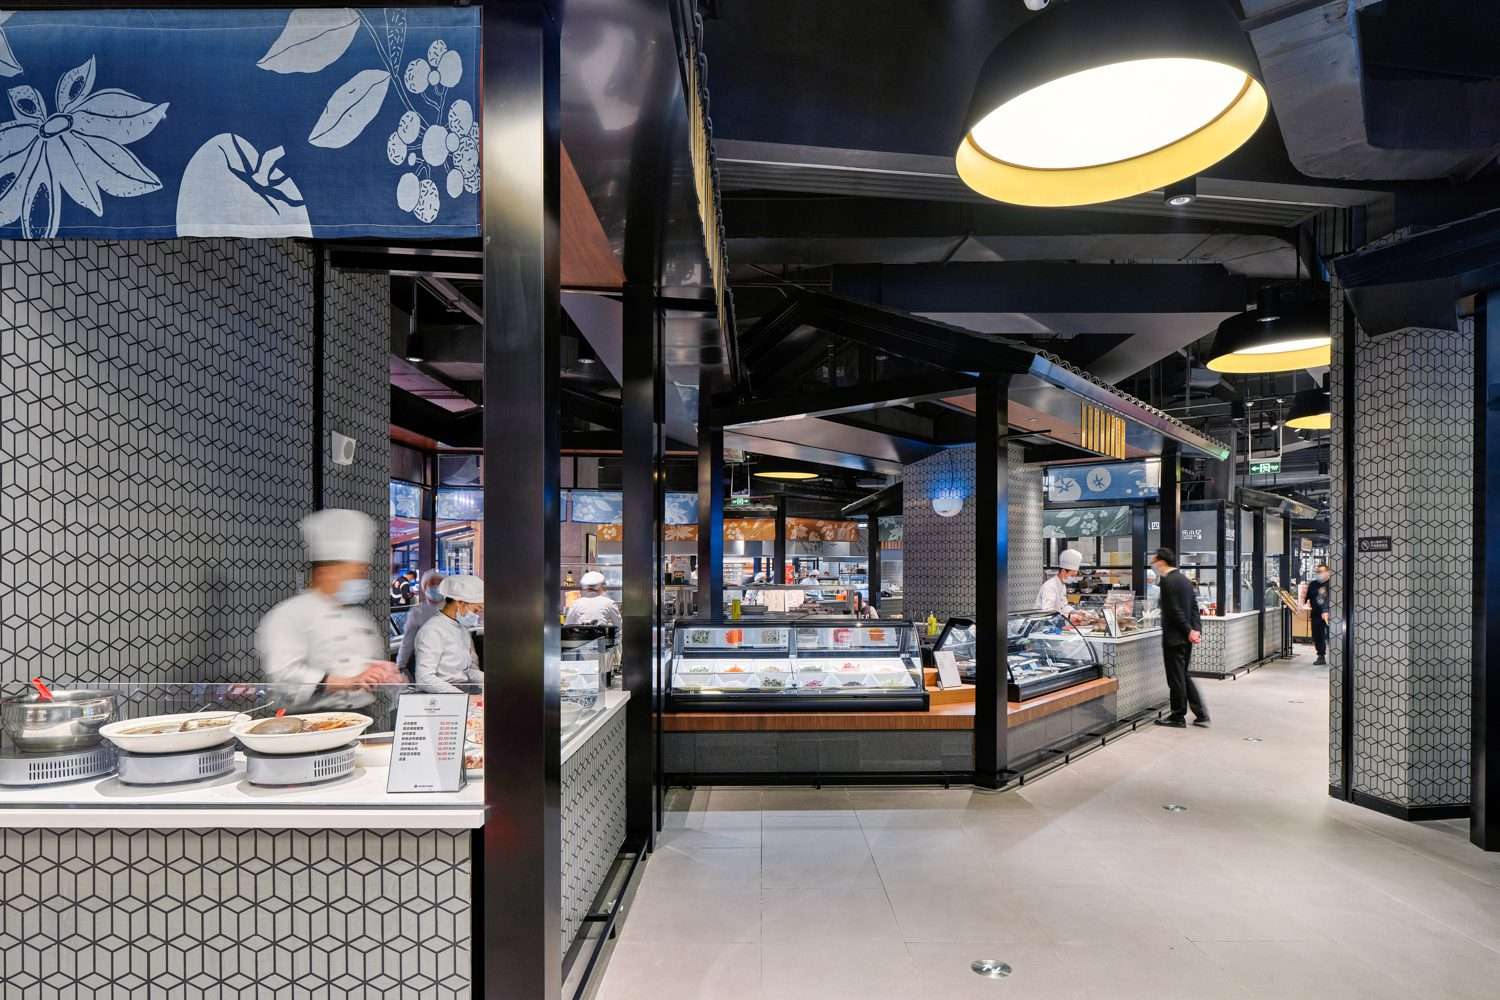 The design aims to help chefs and brands promote themselves.